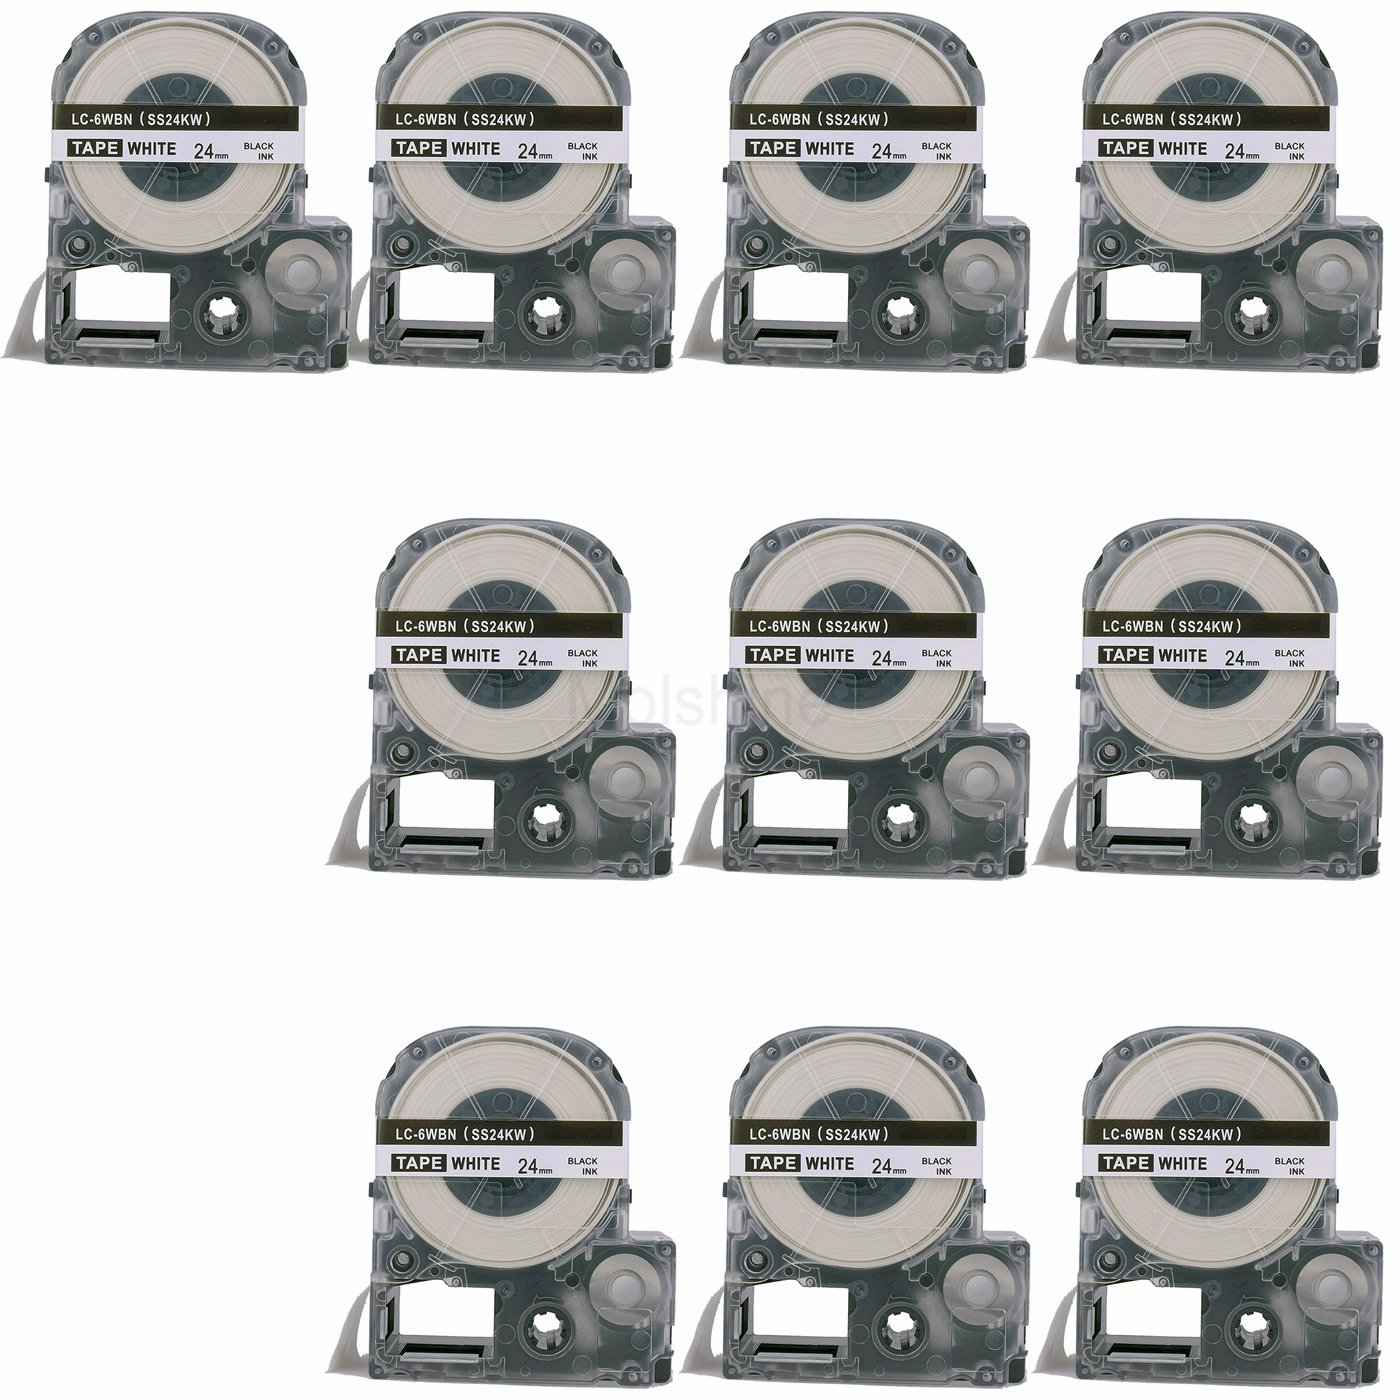 Molshine 10 Pack LC-6WBN9 LK-4PBK5(SS24KW) Compatible Label Tape for EPSON Black on White (1/1 24mm) 8m